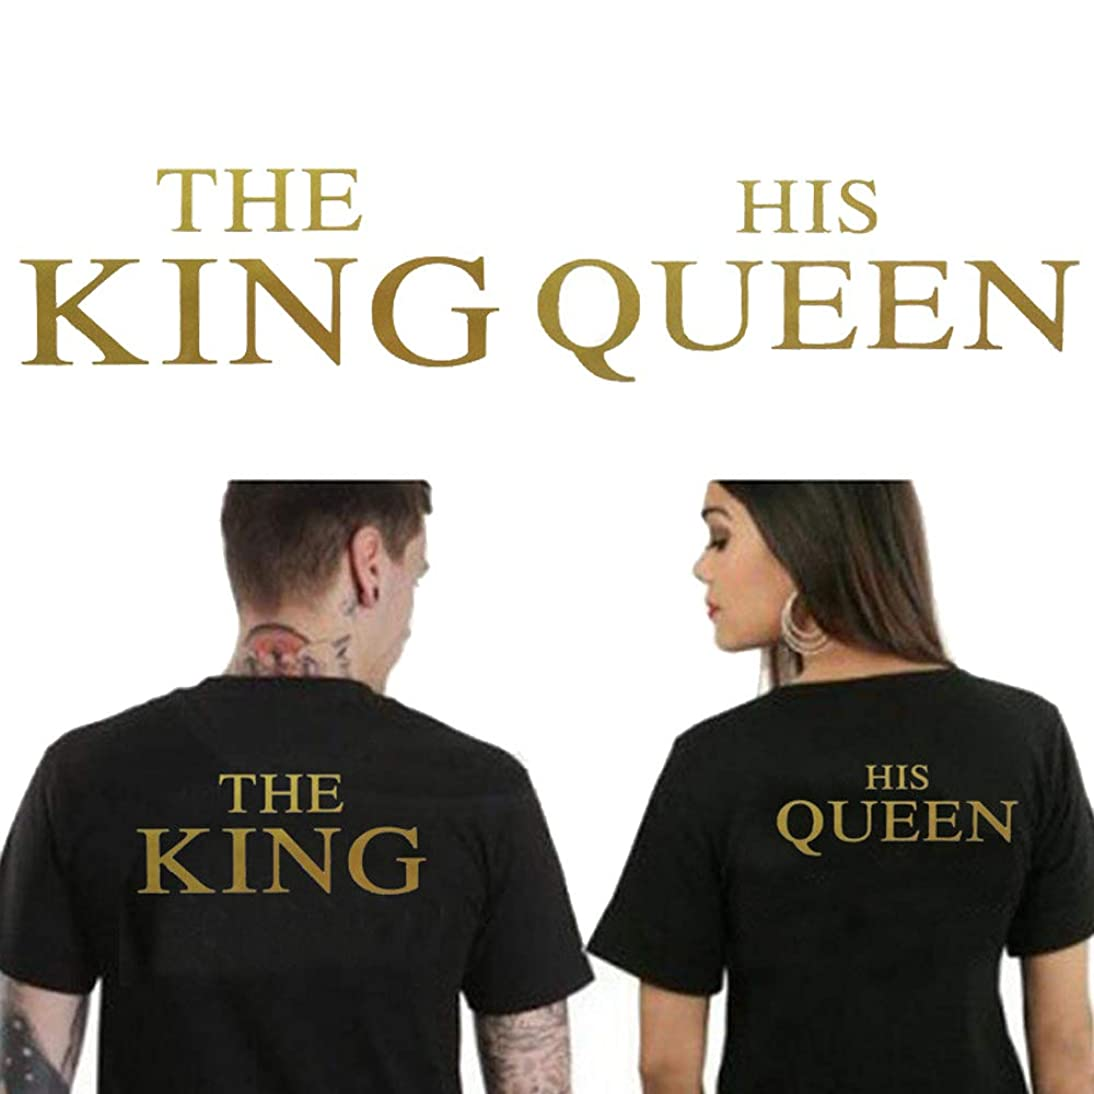 Iron On Stickers for Couples The King and HIS Queen Iron On Patch DIY Gold T-Shirt Sweater Thermal Transfer Paper Patches for Clothing Valentine's Day Gifts(2 PCS)